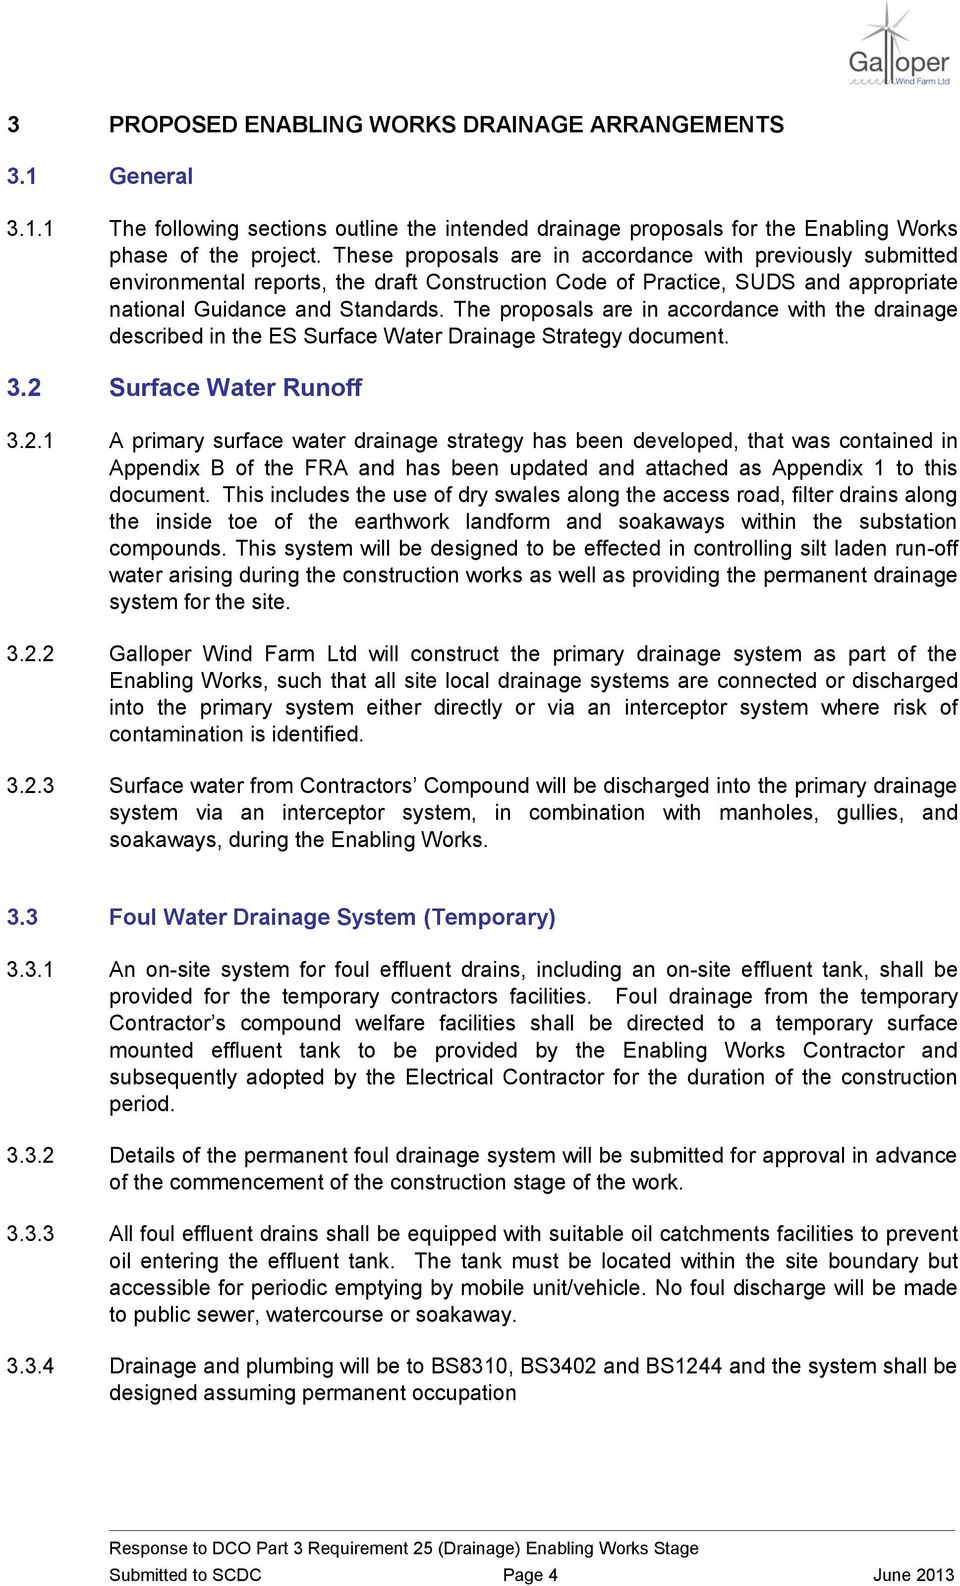 The proposals are in accordance with the drainage described in the ES Surface Water Drainage Strategy document. 3.2